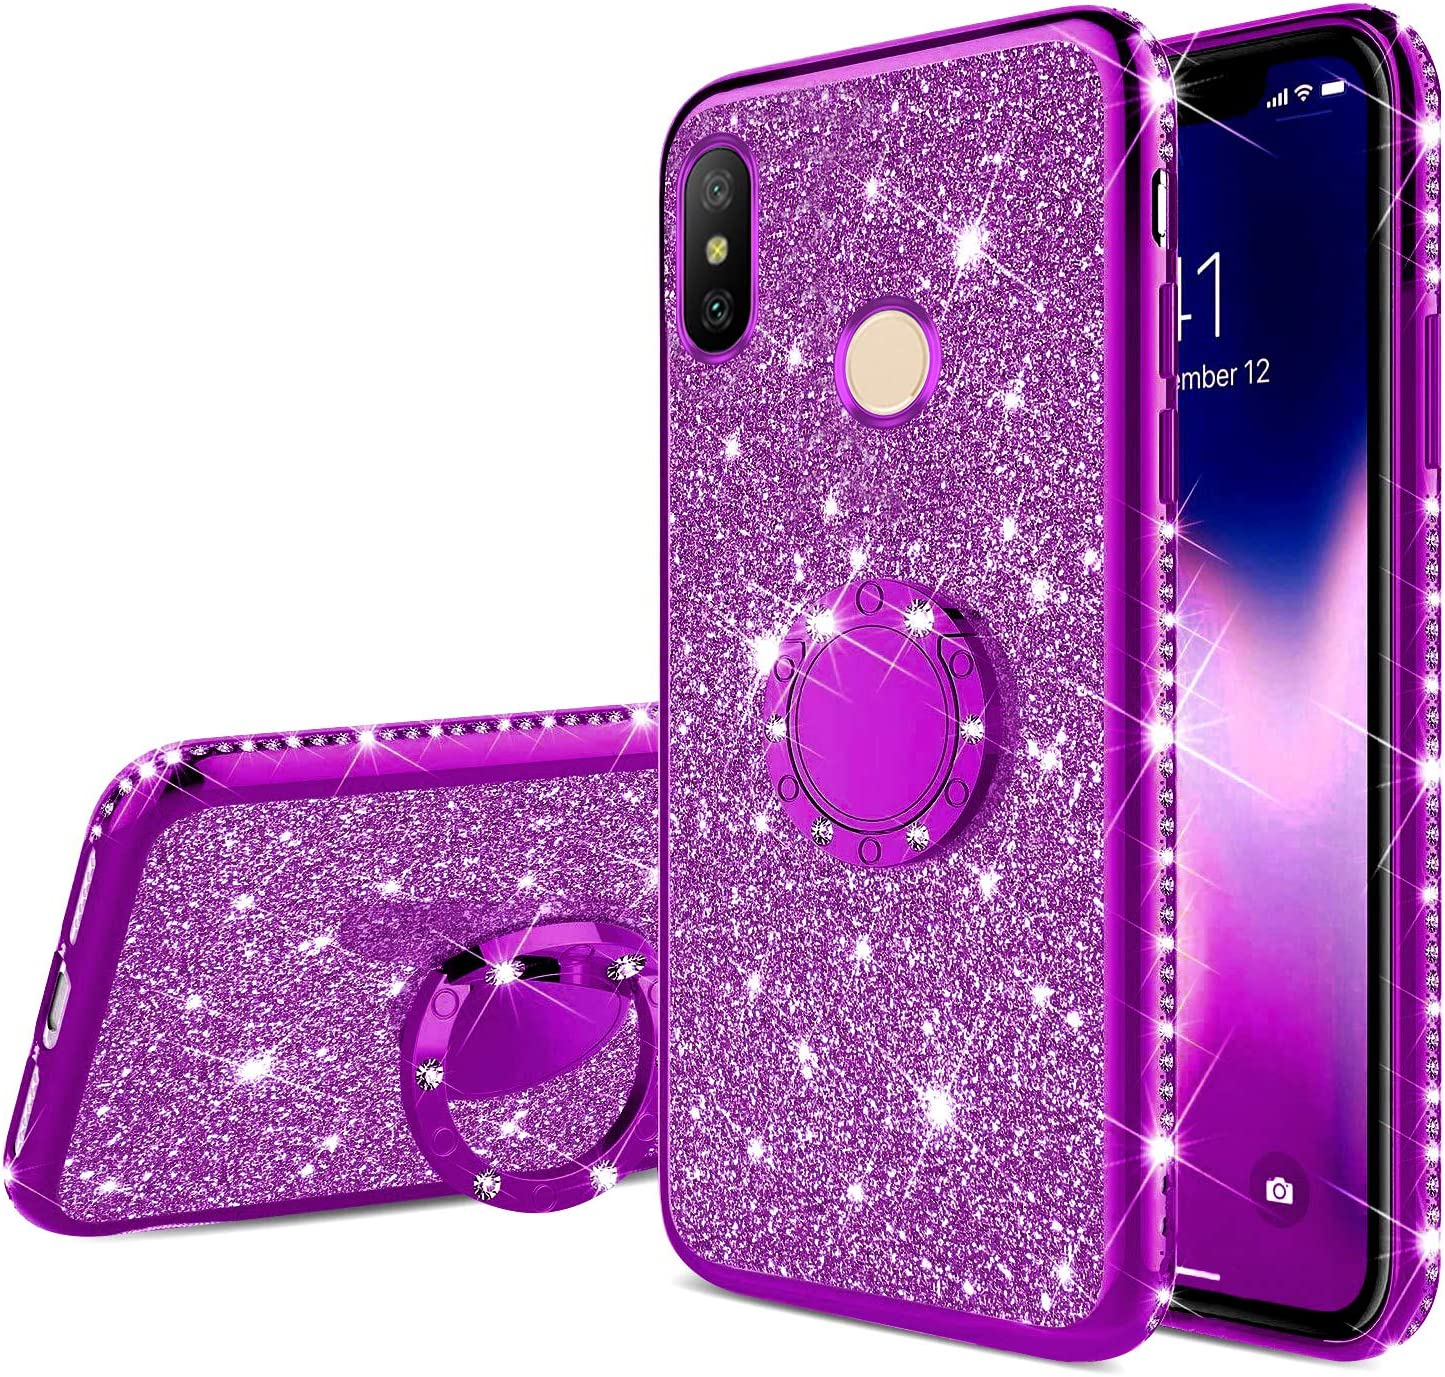 Herbests Compatible with iPhone 6S Plus 5.5 Glitter Case Sparkly Bling Rhinestone Girls Women Cute Ultra-Thin Soft TPU Rubber Silicone Cover with Diamond Kickstand Ring Holder,Red